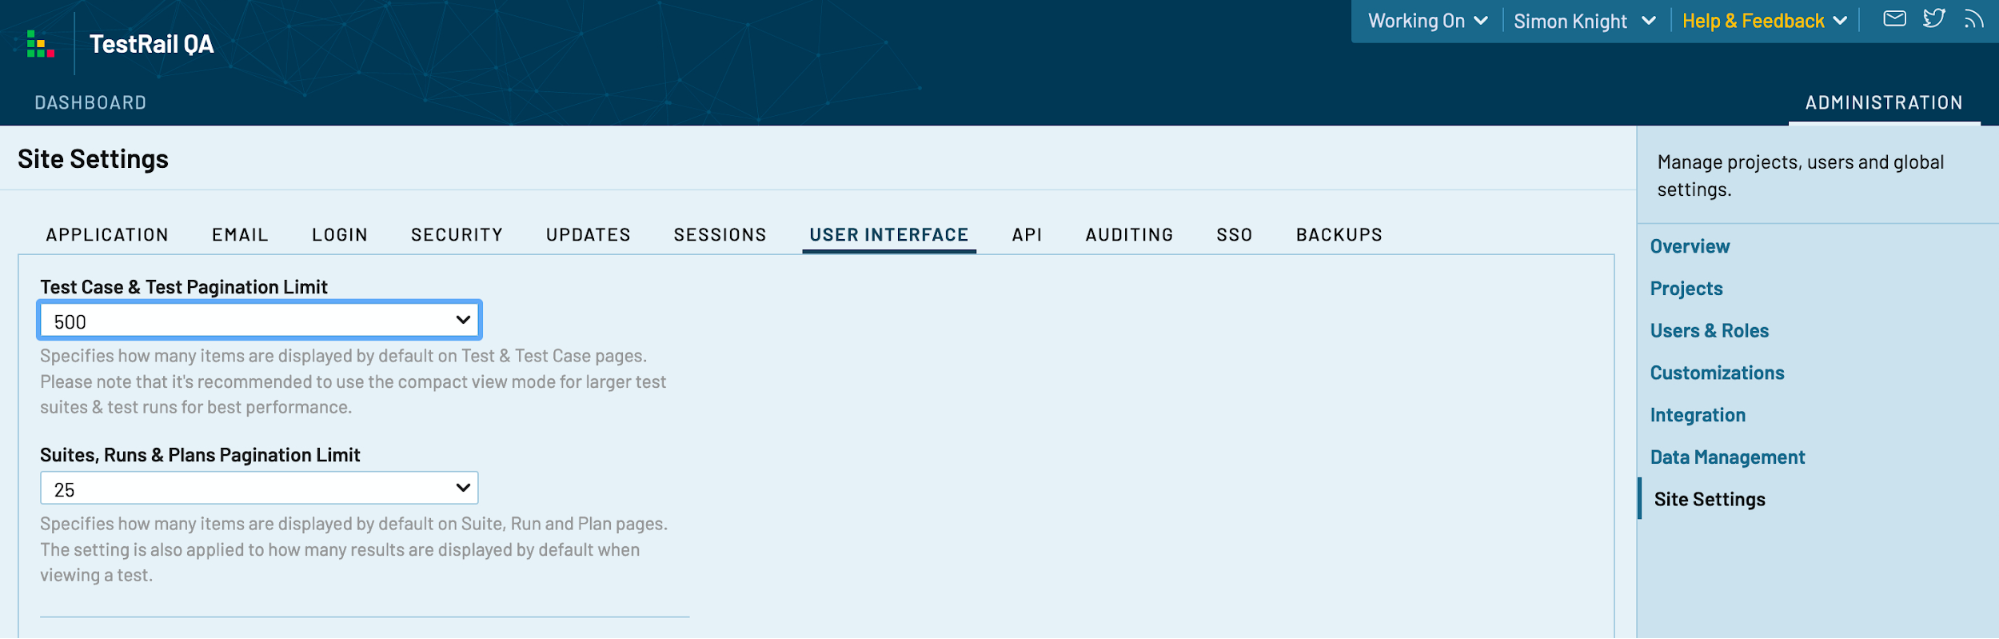 TestRail user interface console